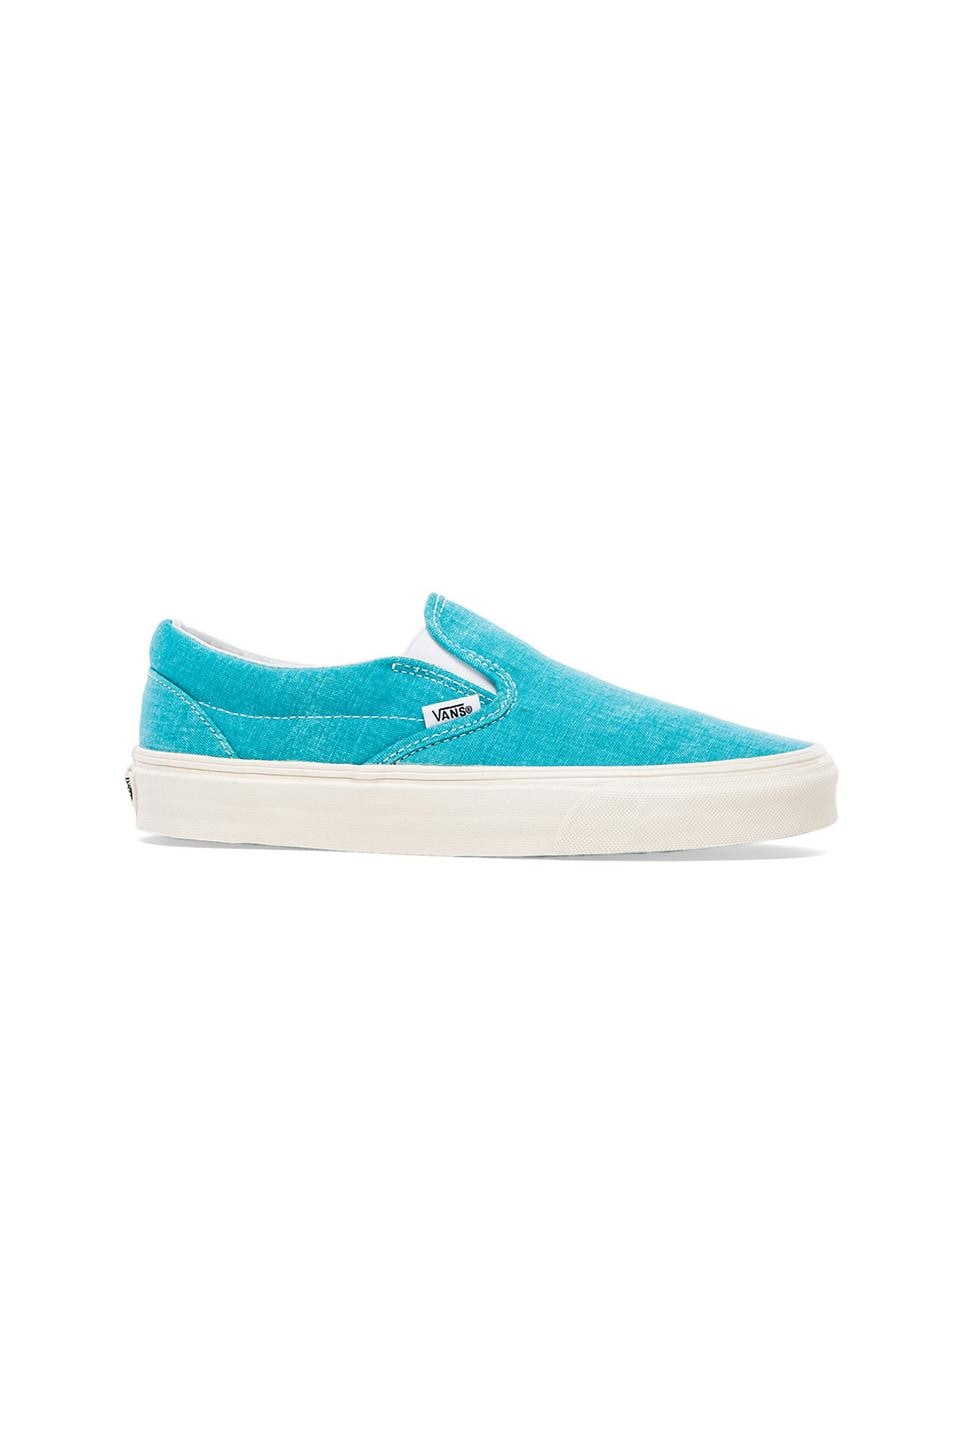 Vans Classic Slip-On Sneaker in Peacock Blue